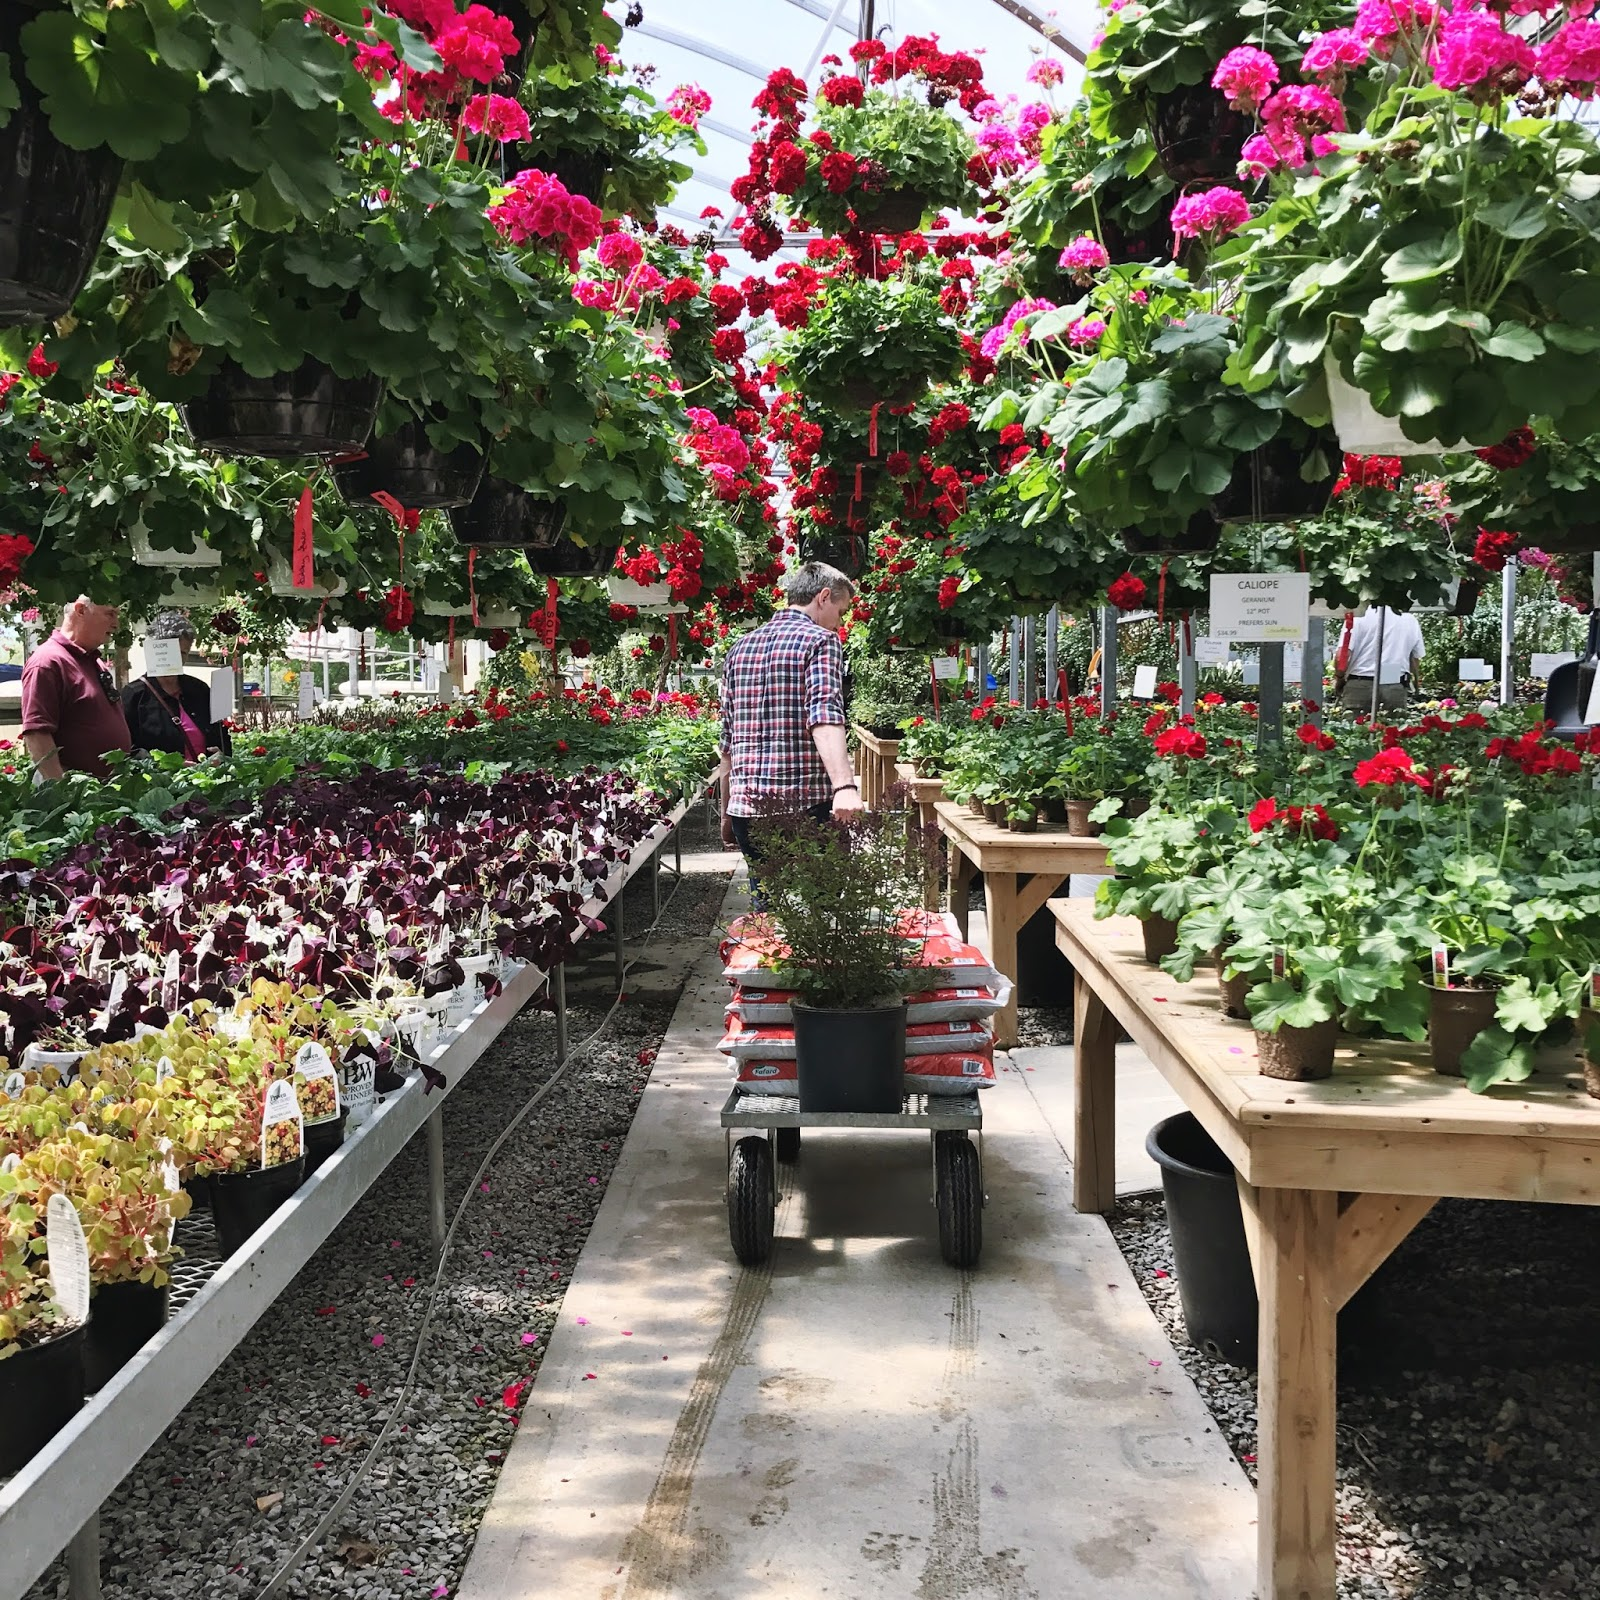 prince edward county attractions, flower stand, belleville attractions, trenton